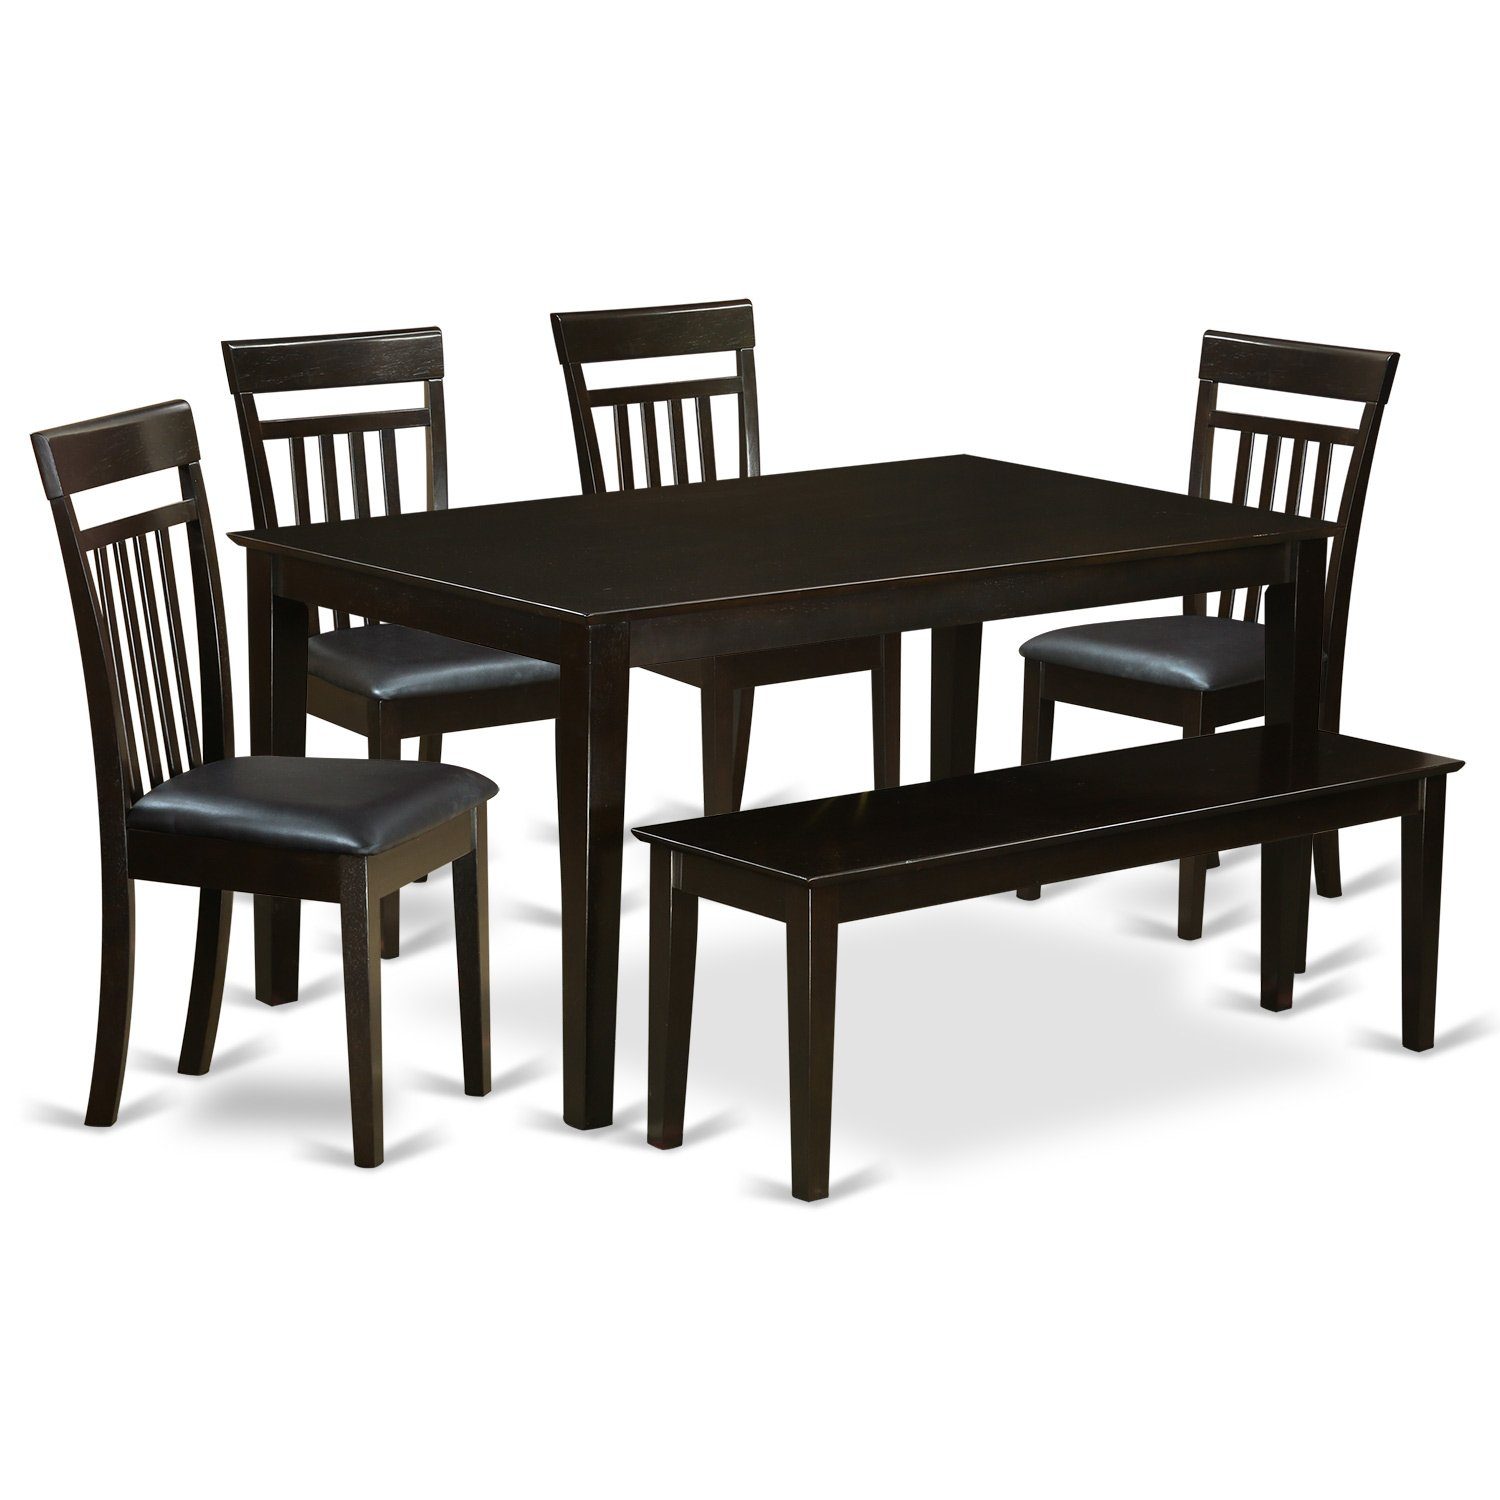 Amazon com east west furniture cap6s cap lc 6 pc dining room set top kitchen table and 4 kitchen chairs plus 1 dining bench kitchen dining